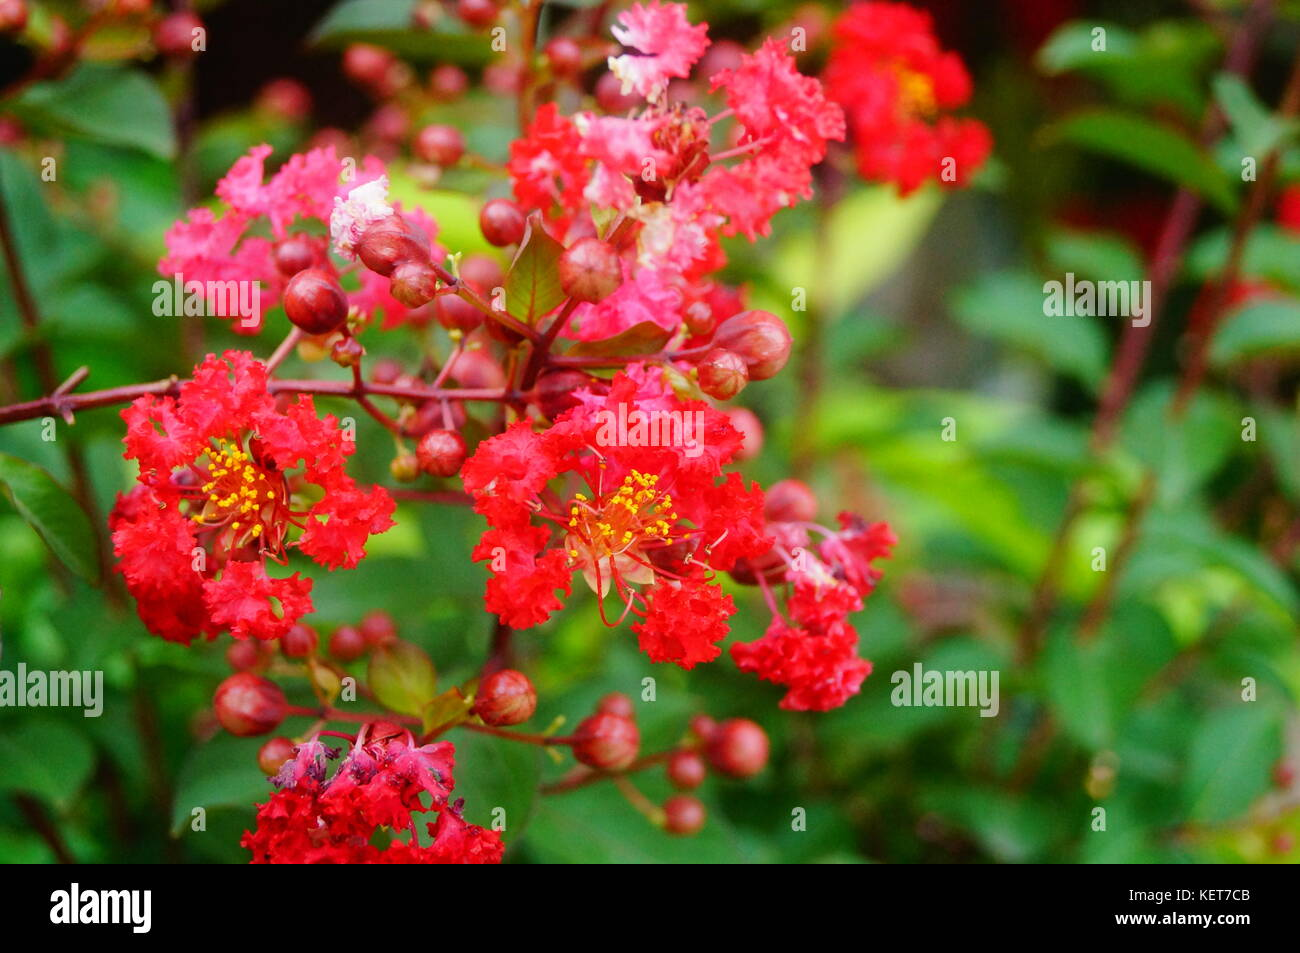 Leaves Of Crape Myrtle Stock Photos & Leaves Of Crape Myrtle Stock ...